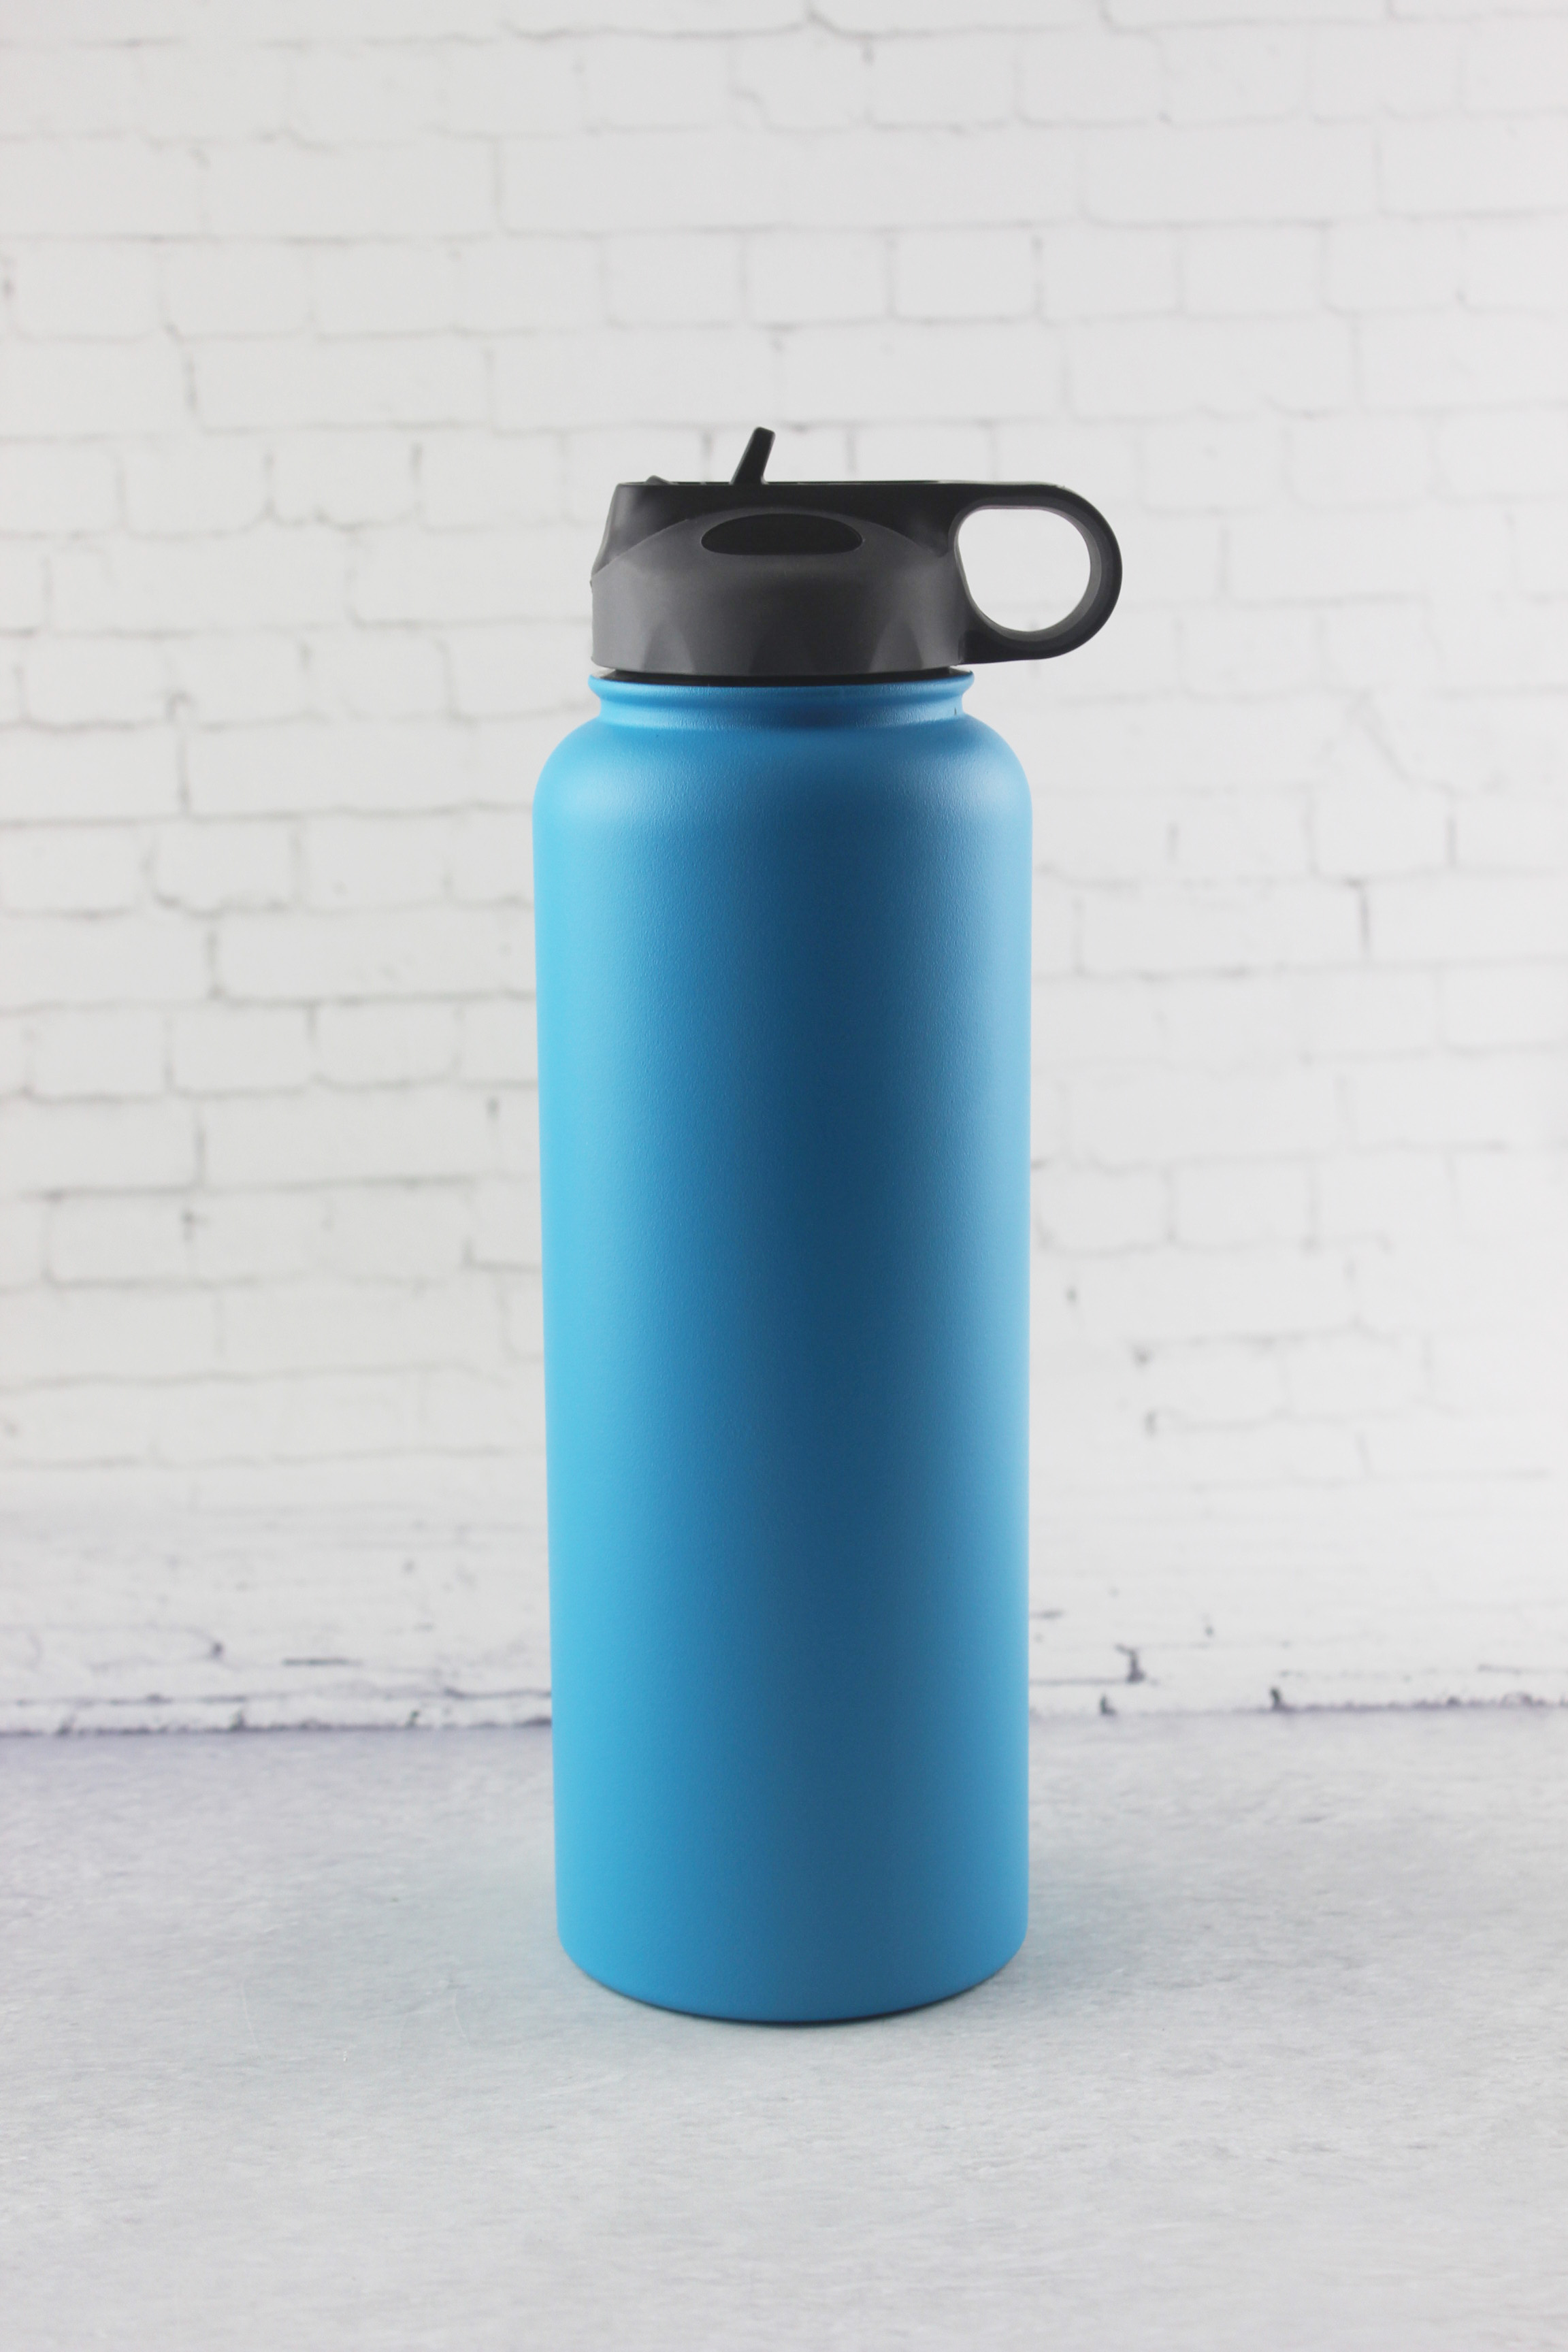 32 Oz vacuum flasks with straw lid,Double Wall Vacuum Stainless Steel Water Bottle,Thermos for Home